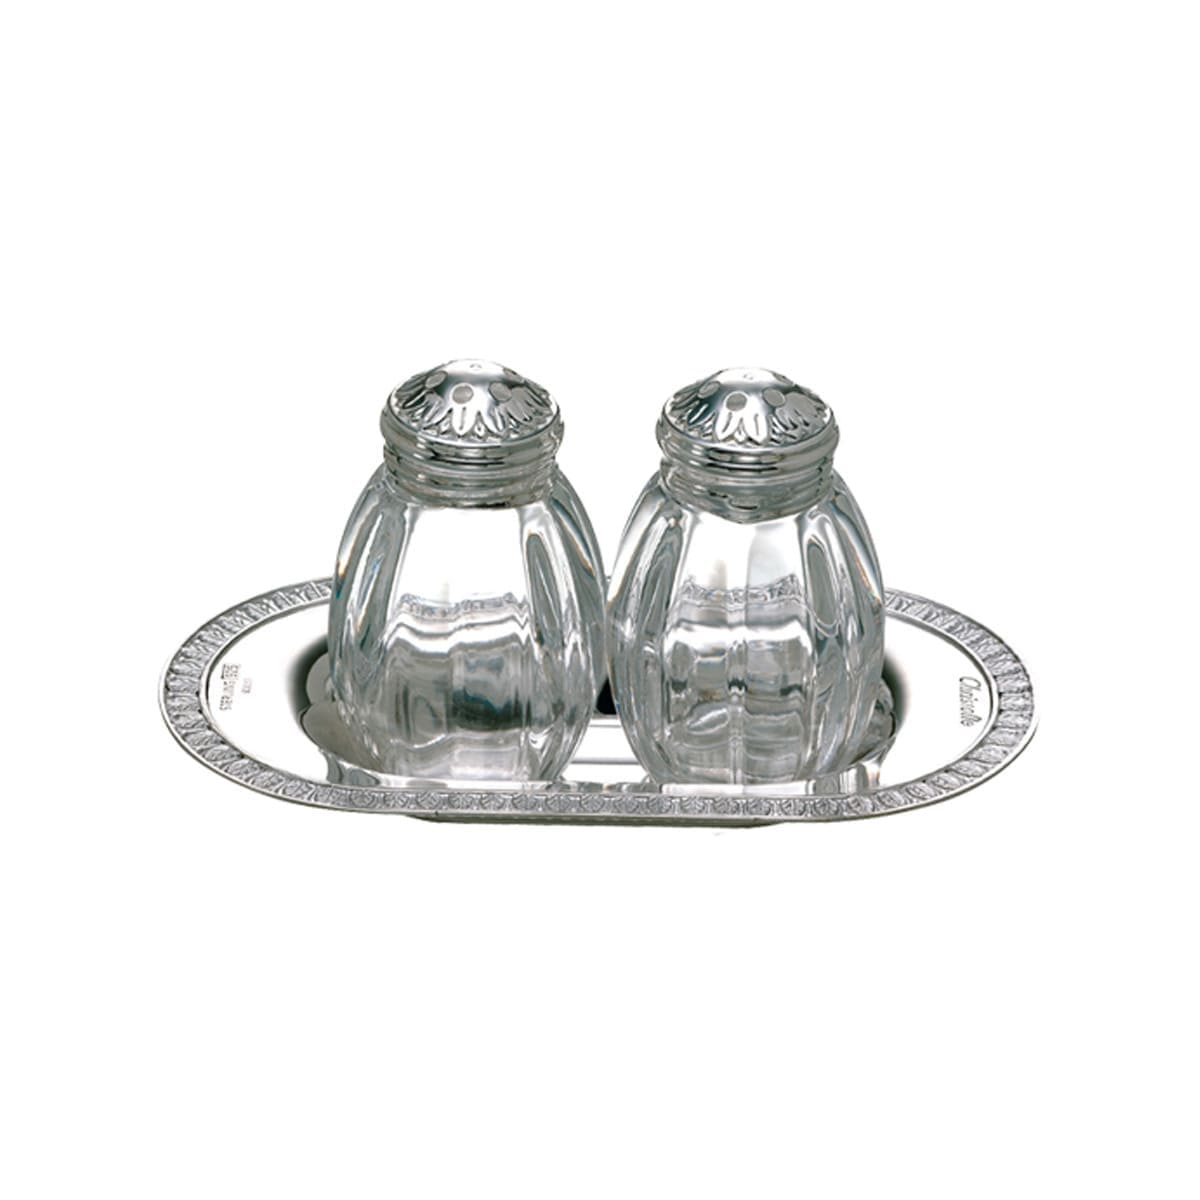 Christofle Malmaison Salt and Pepper Shakers and serving dish